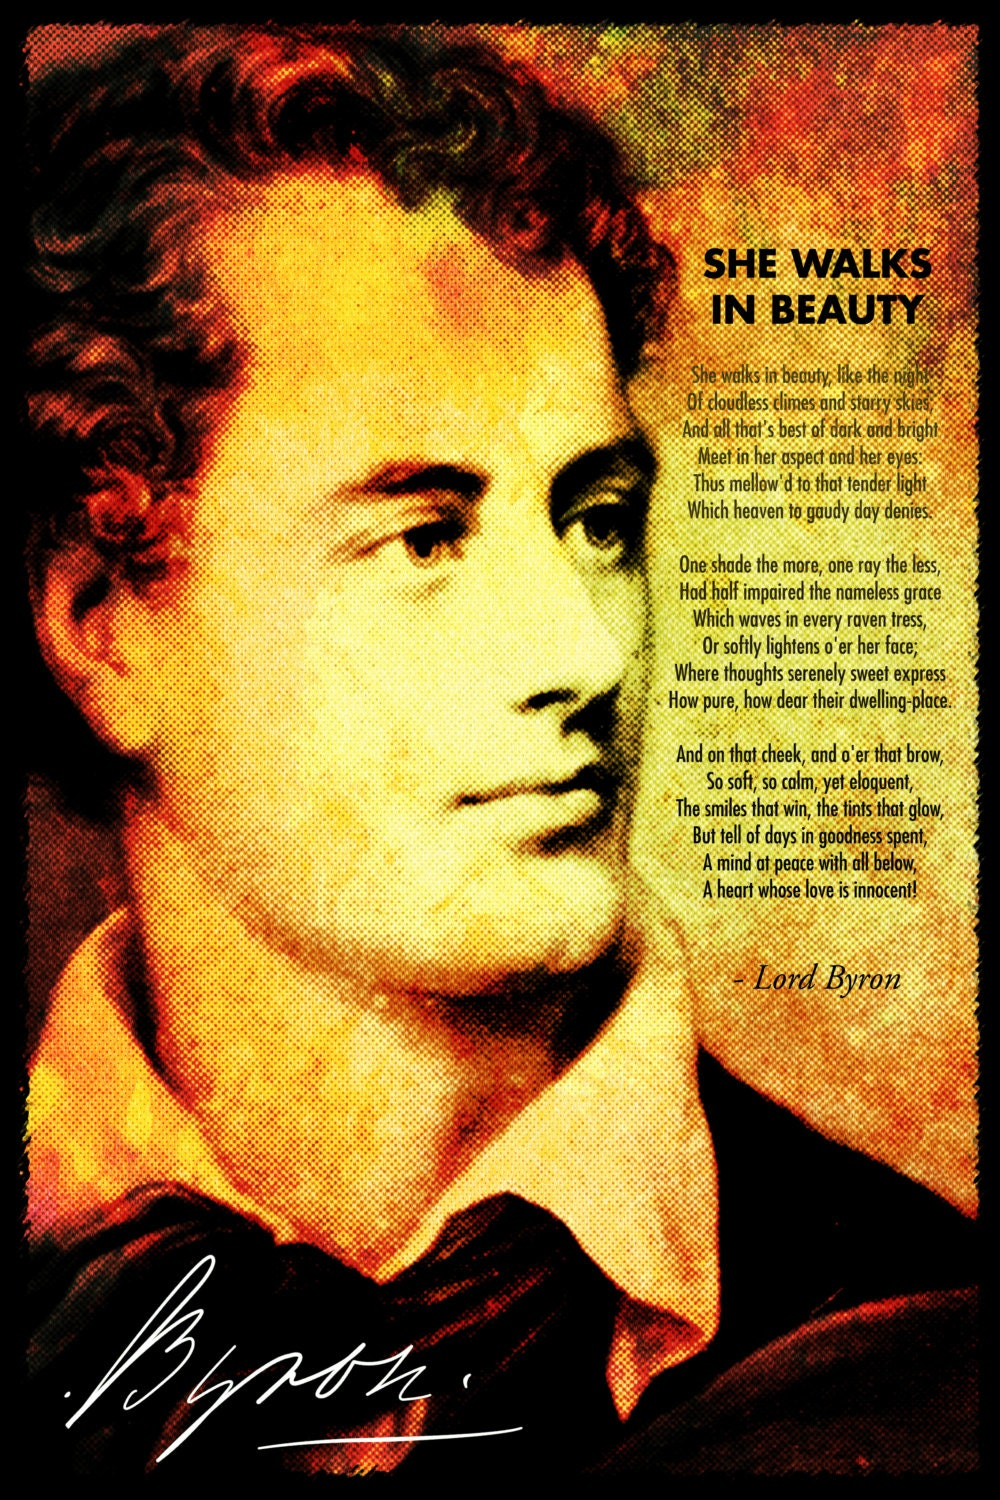 she walks in beauty research paper The poem he wrote she walks in beauty is one of byron's most famous poem it is obvius that this poem is somewhat of a love poem , expressing how beautiful this woman is that lord byron is looking at.